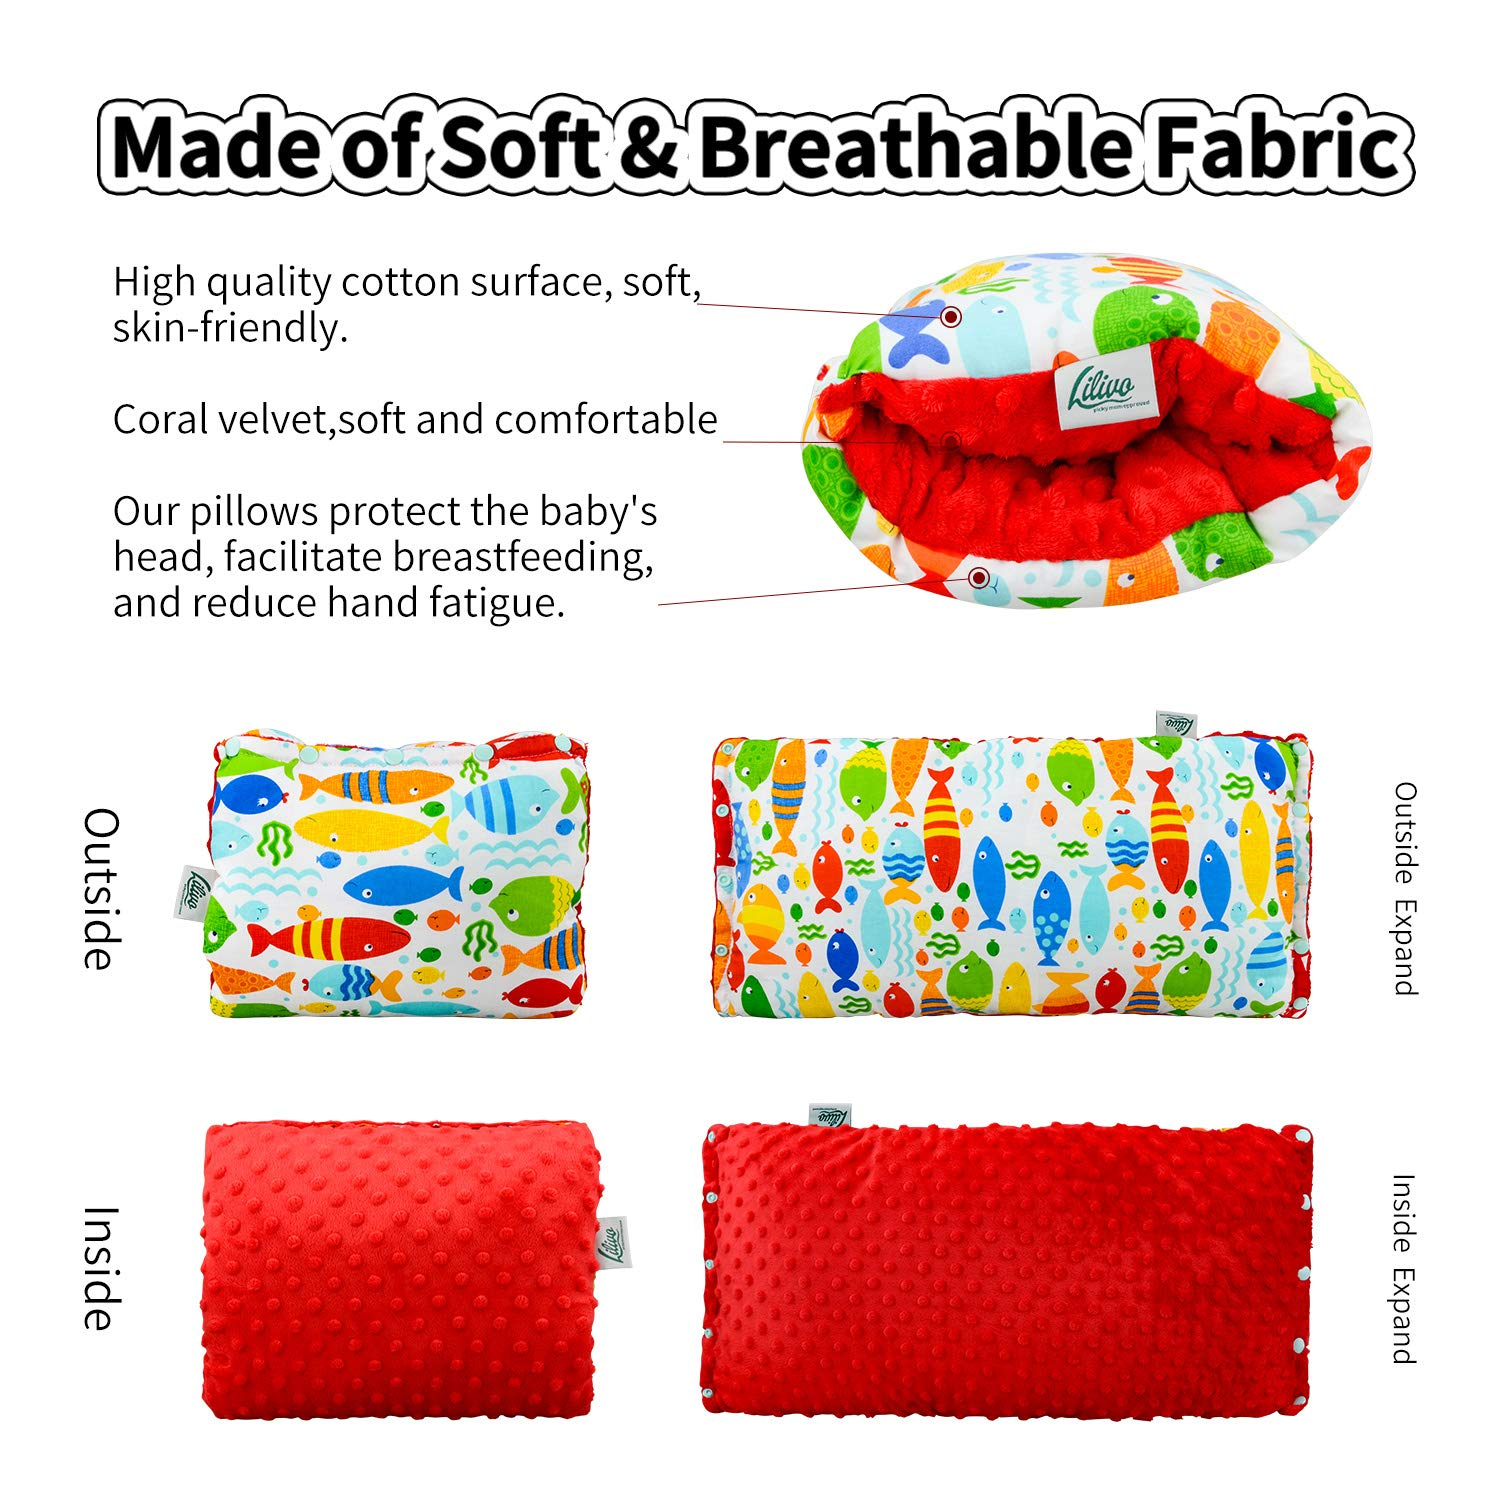 Infant Nursing Arm Pillow for Breastfeeding Portable Baby Care Accessories for C-Section Mom Red Bottle Feeding Newborn Head Support Slip-On Cushion Positioner with Burp Cloth /& Pouch Bag